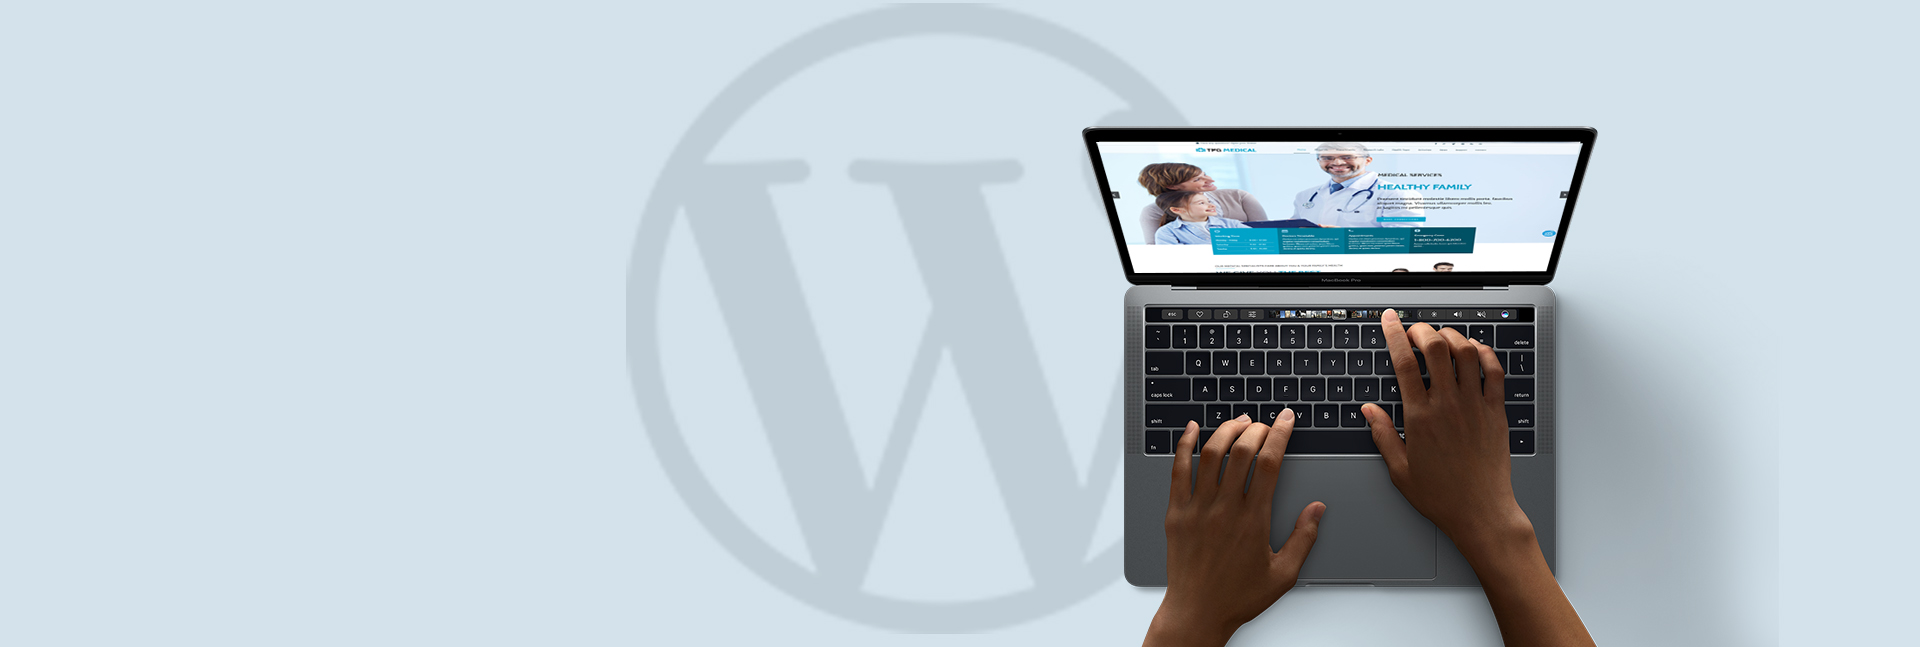 Hire wordpress developers at $12/Hour or $1500/Month | Wordpress Development Company Australia | Hire Wordpress Experts